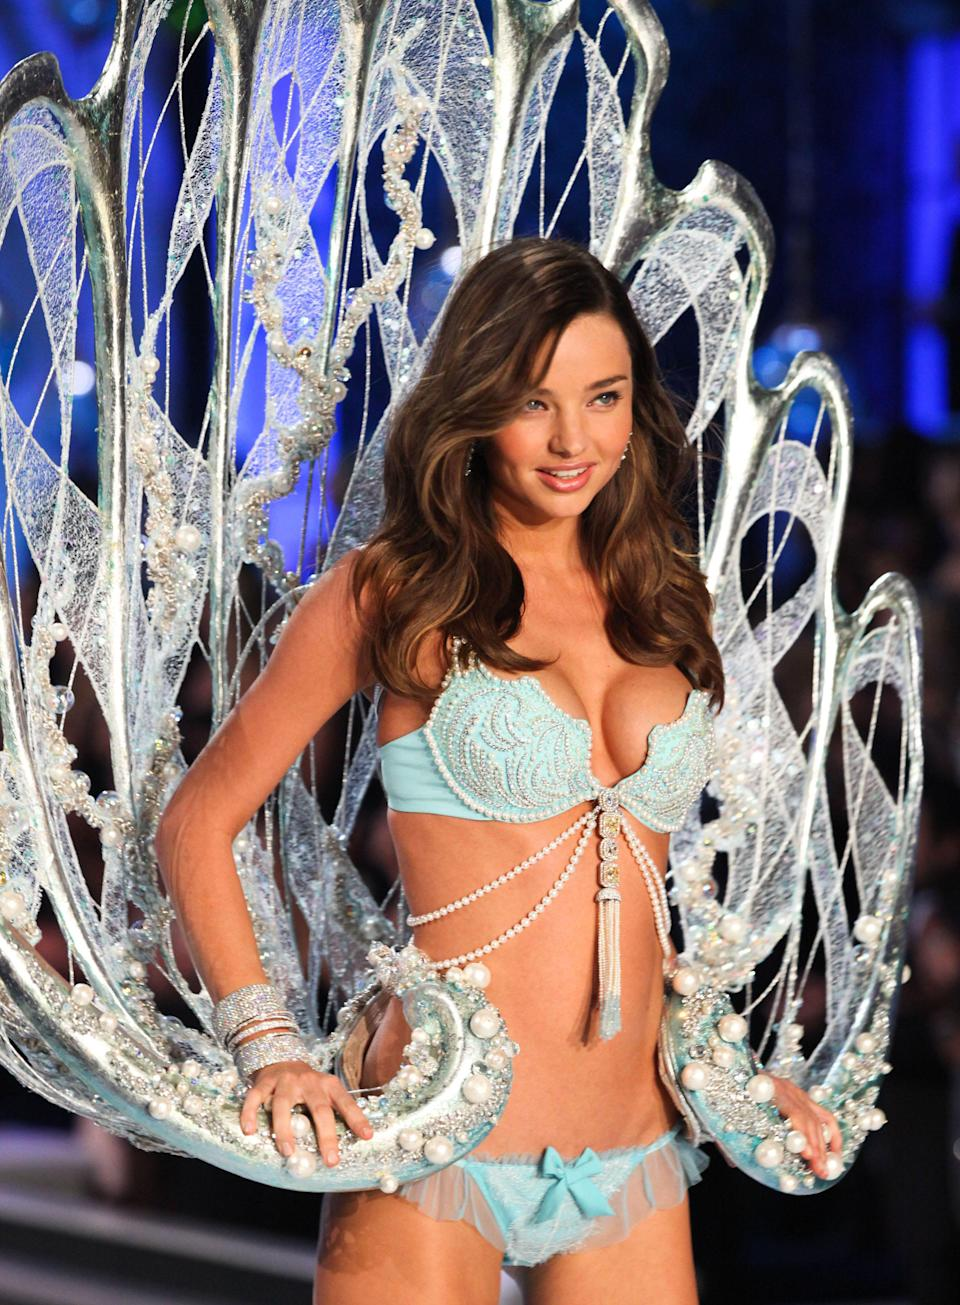 <p>Aussie model, and Orlando Bloom's former wife, Miranda Kerr was chosen to wear the 2011 Fantasy Bra. The Fantasy Treasure Bra boasted some 3,400 gems and was valued at $2.5 million. <em>[Photo: Getty]</em> </p>